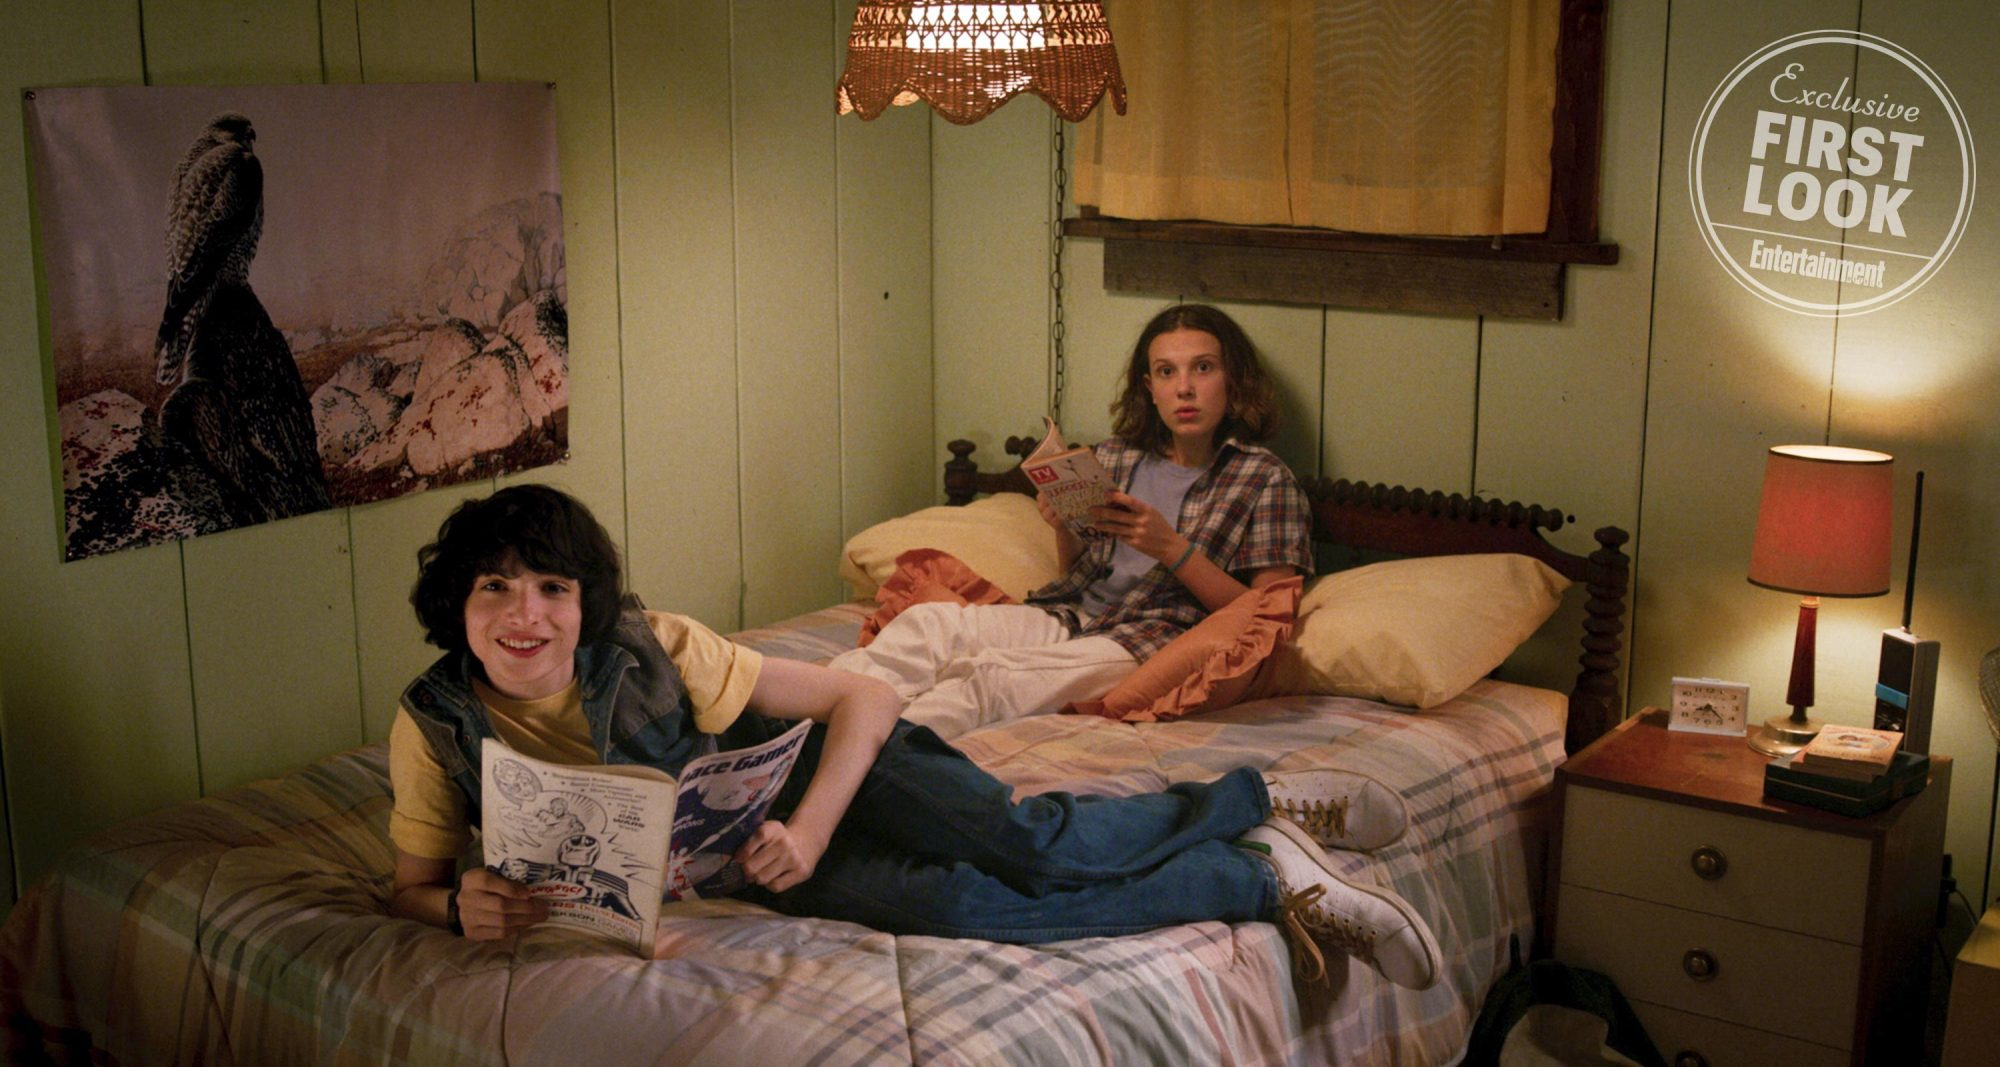 Stranger Things 3: Premieres July 4 on Netflix